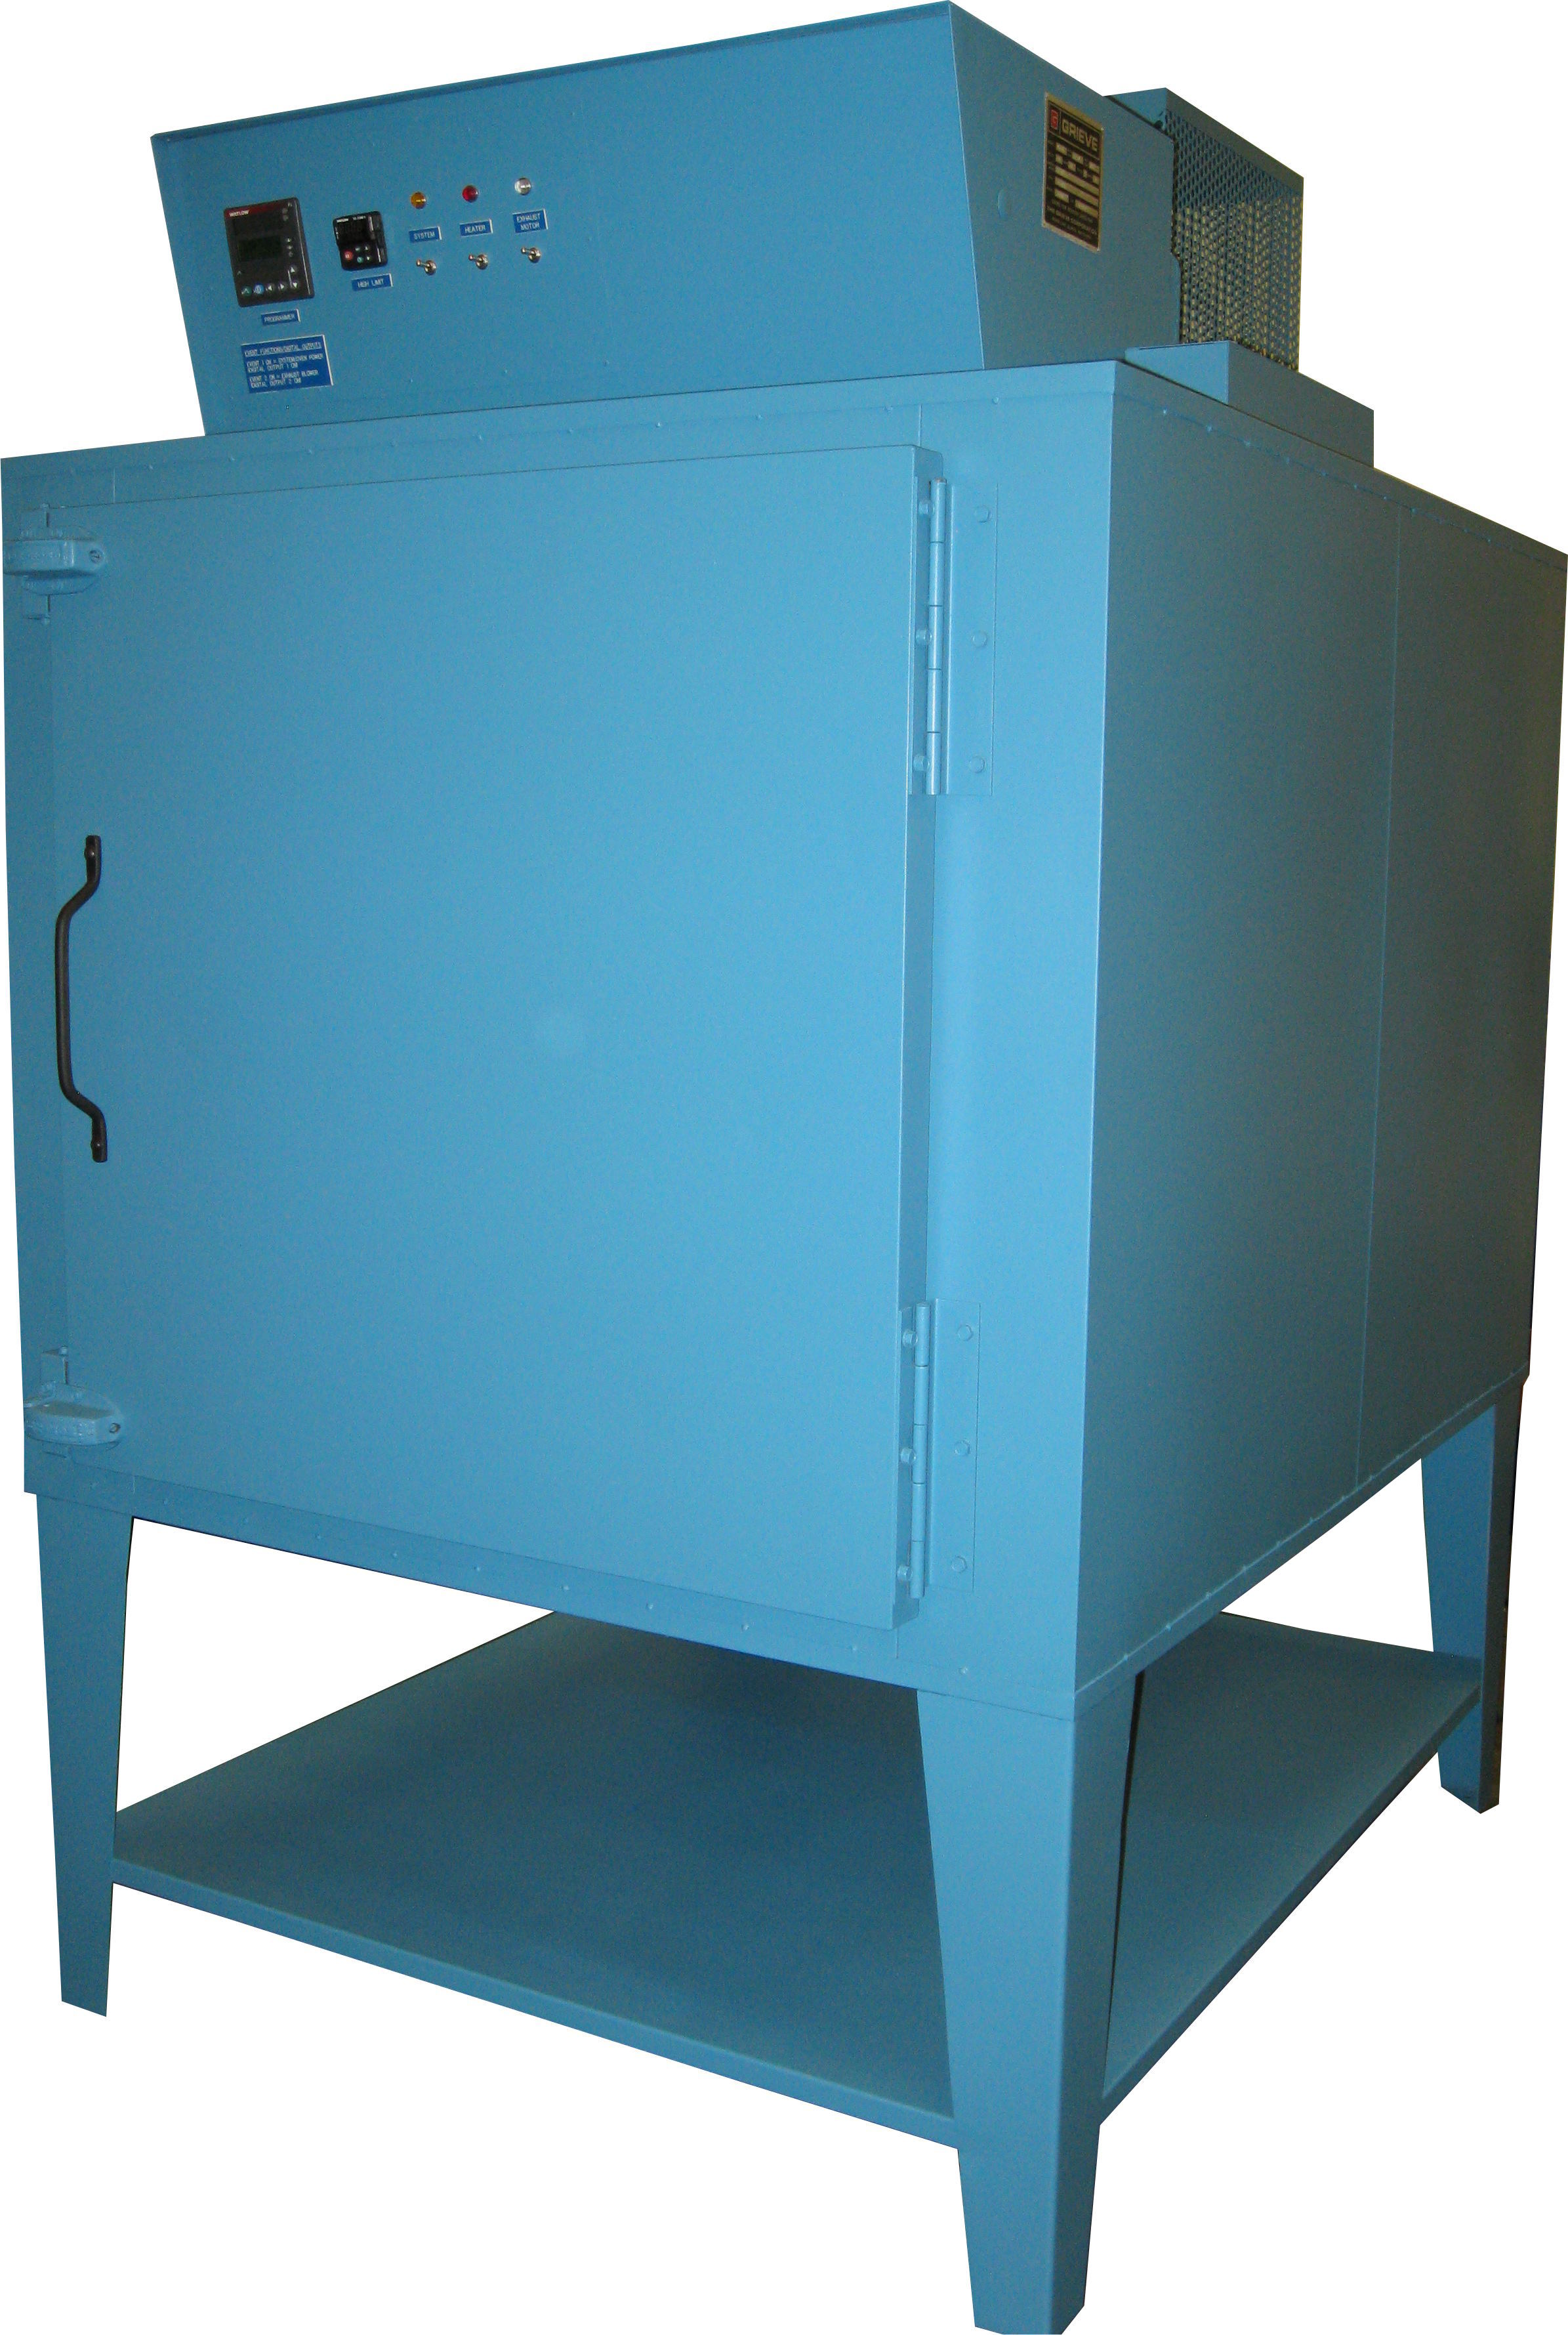 Grieve Oven Example